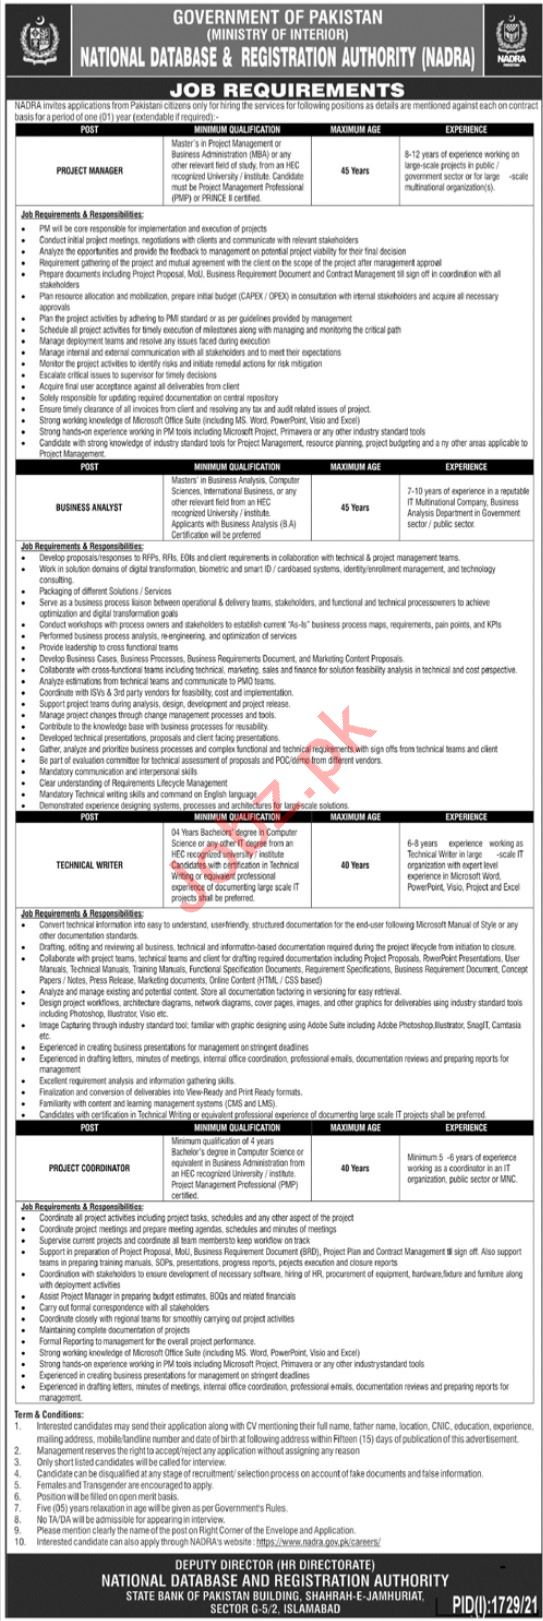 NADRA Islamabad Jobs 2021 for Project Manager